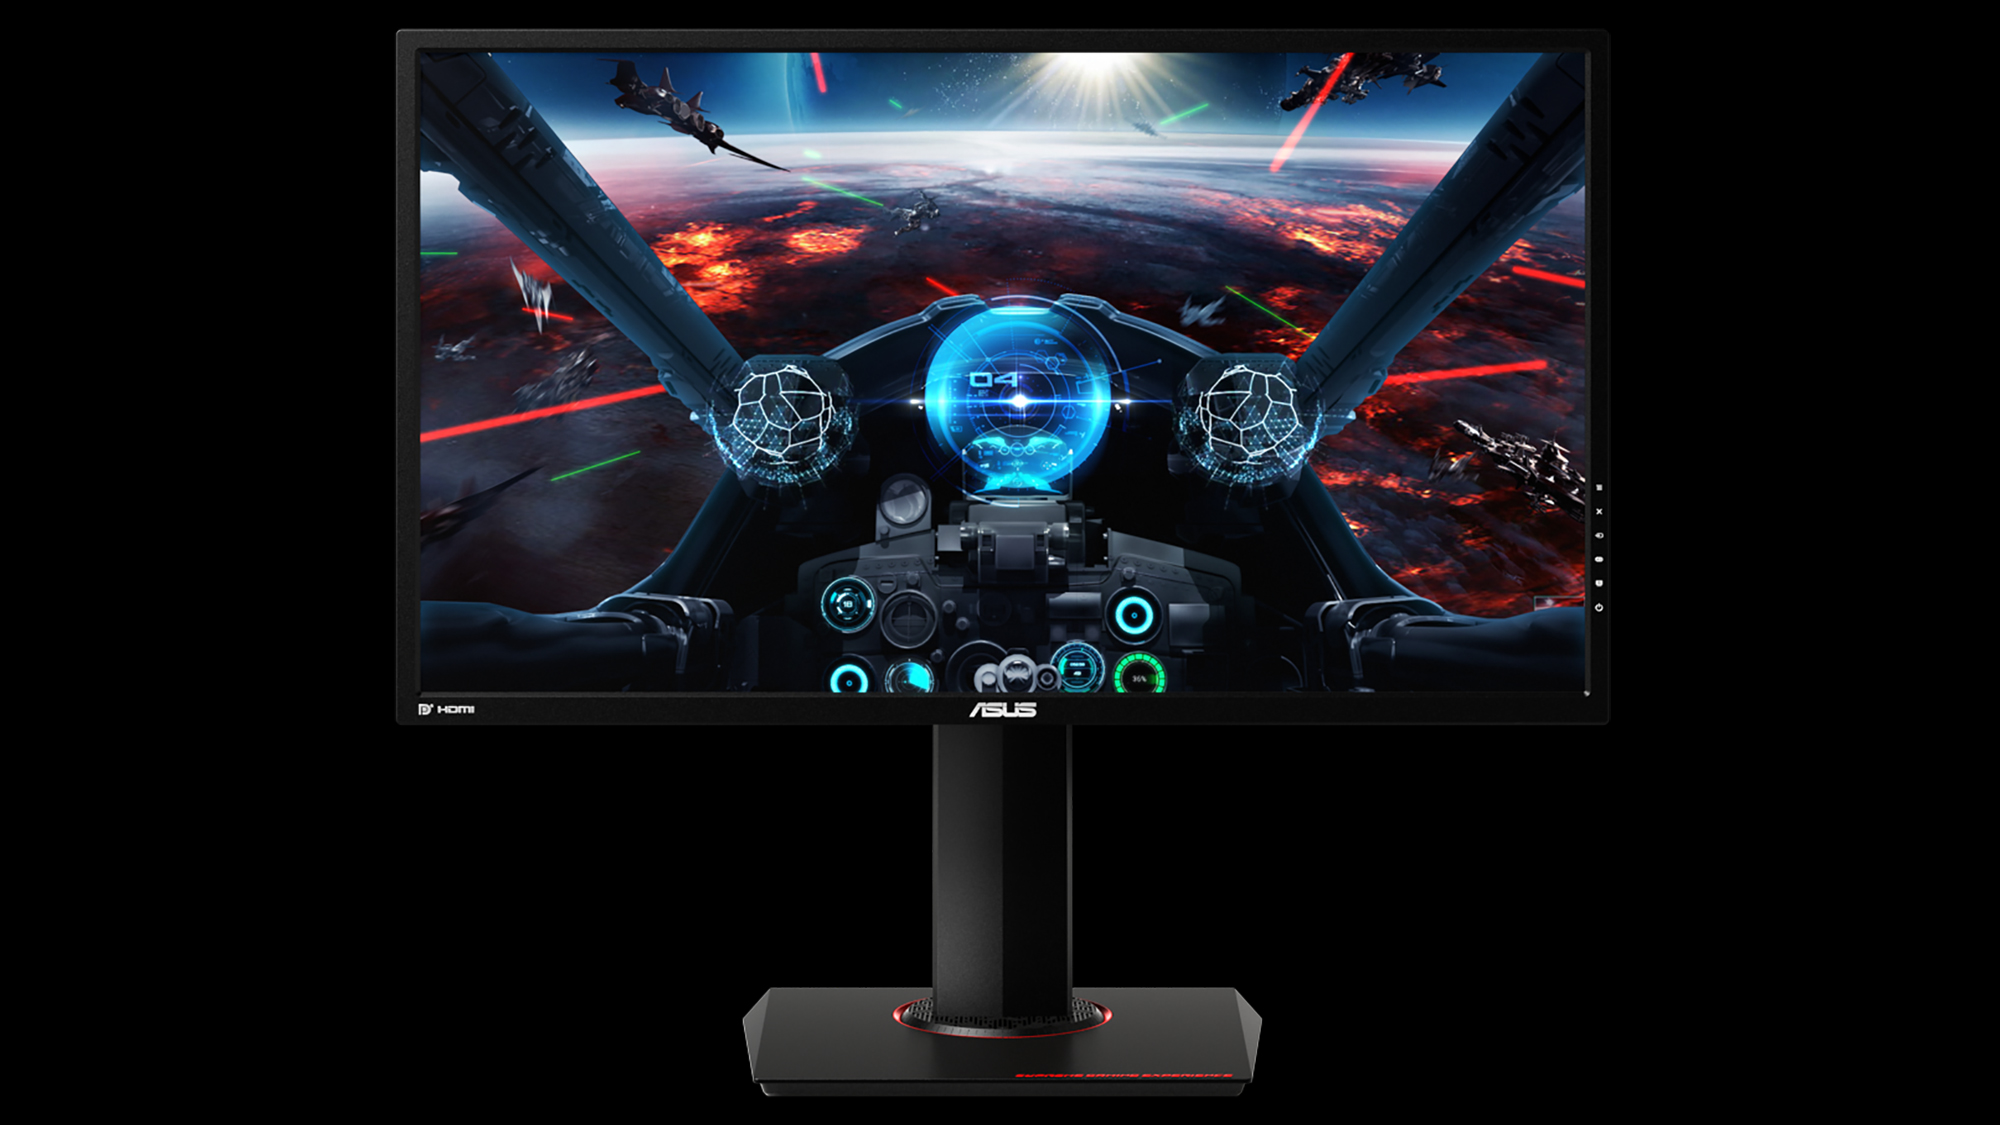 Asus announces three new gaming monitors with GameVisual